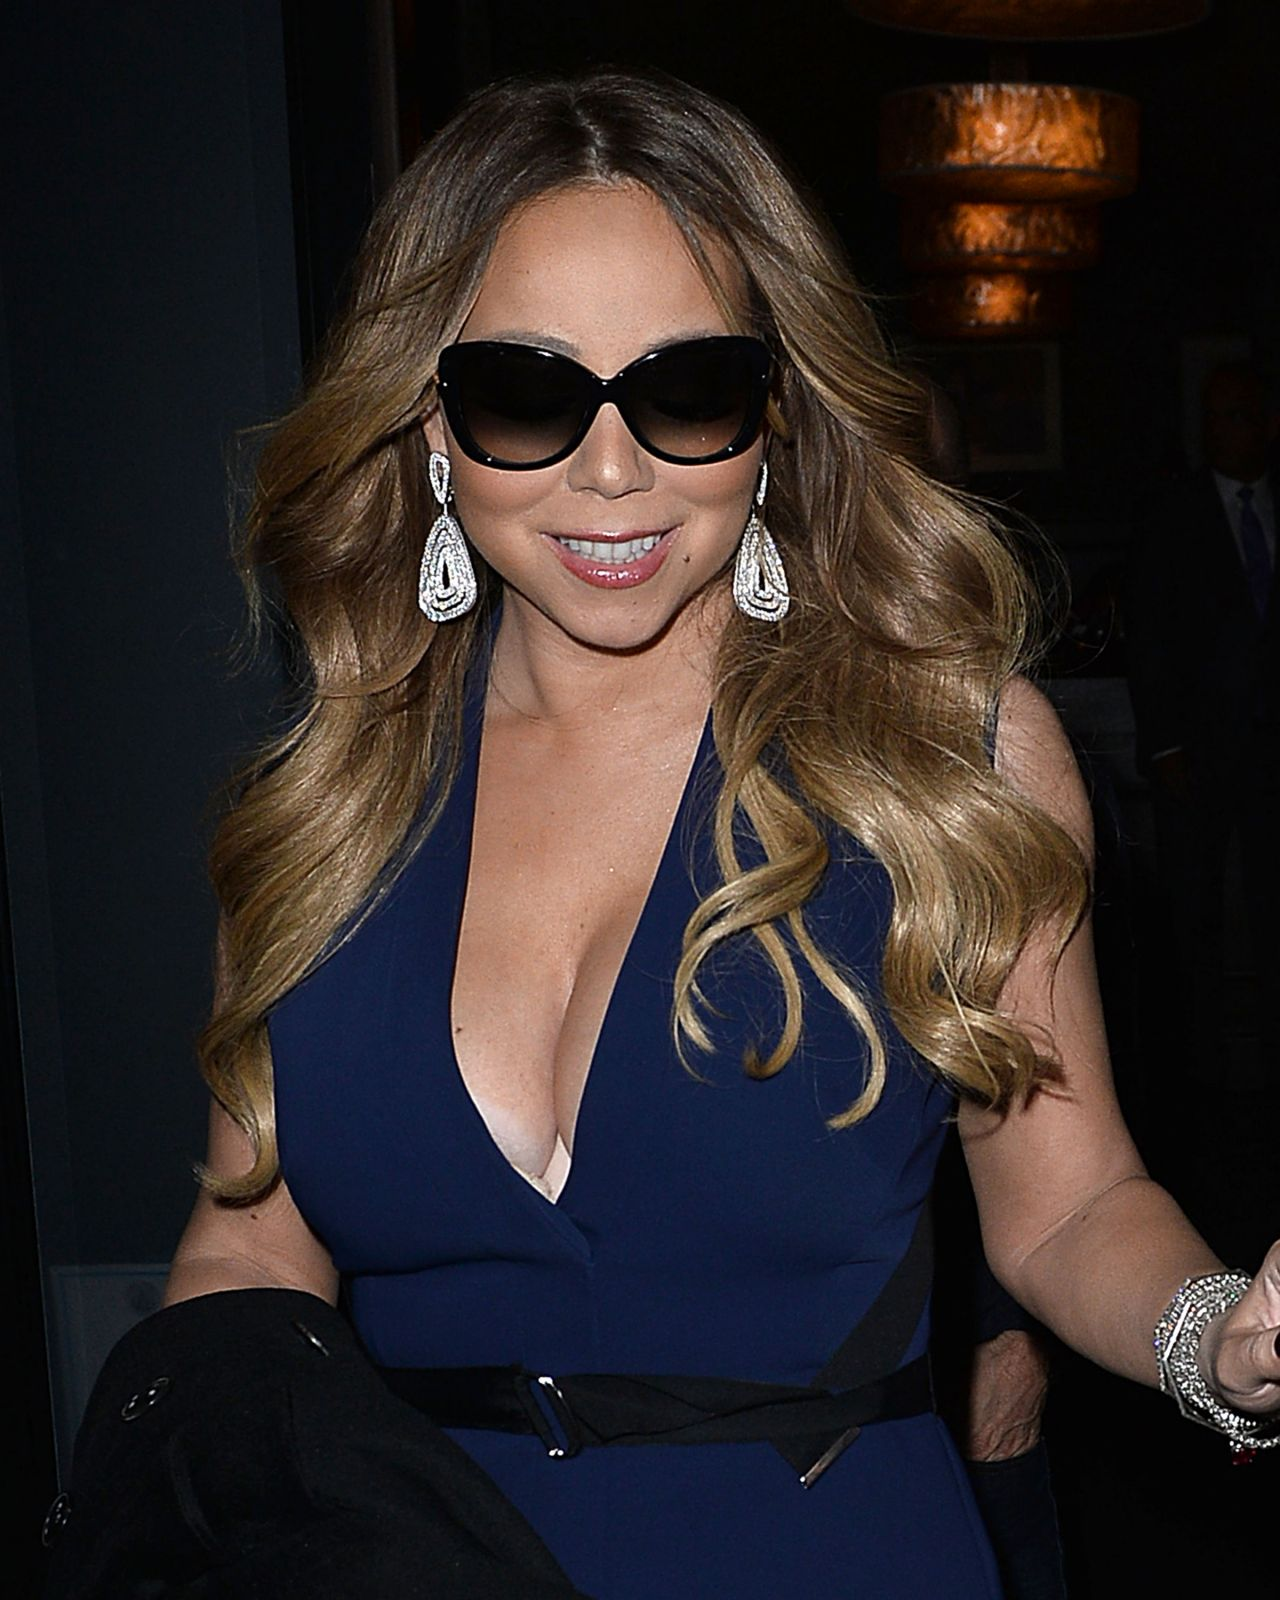 Mariah Carey Style – Has Dinner at Craigs Restaurant, Jan. 2015